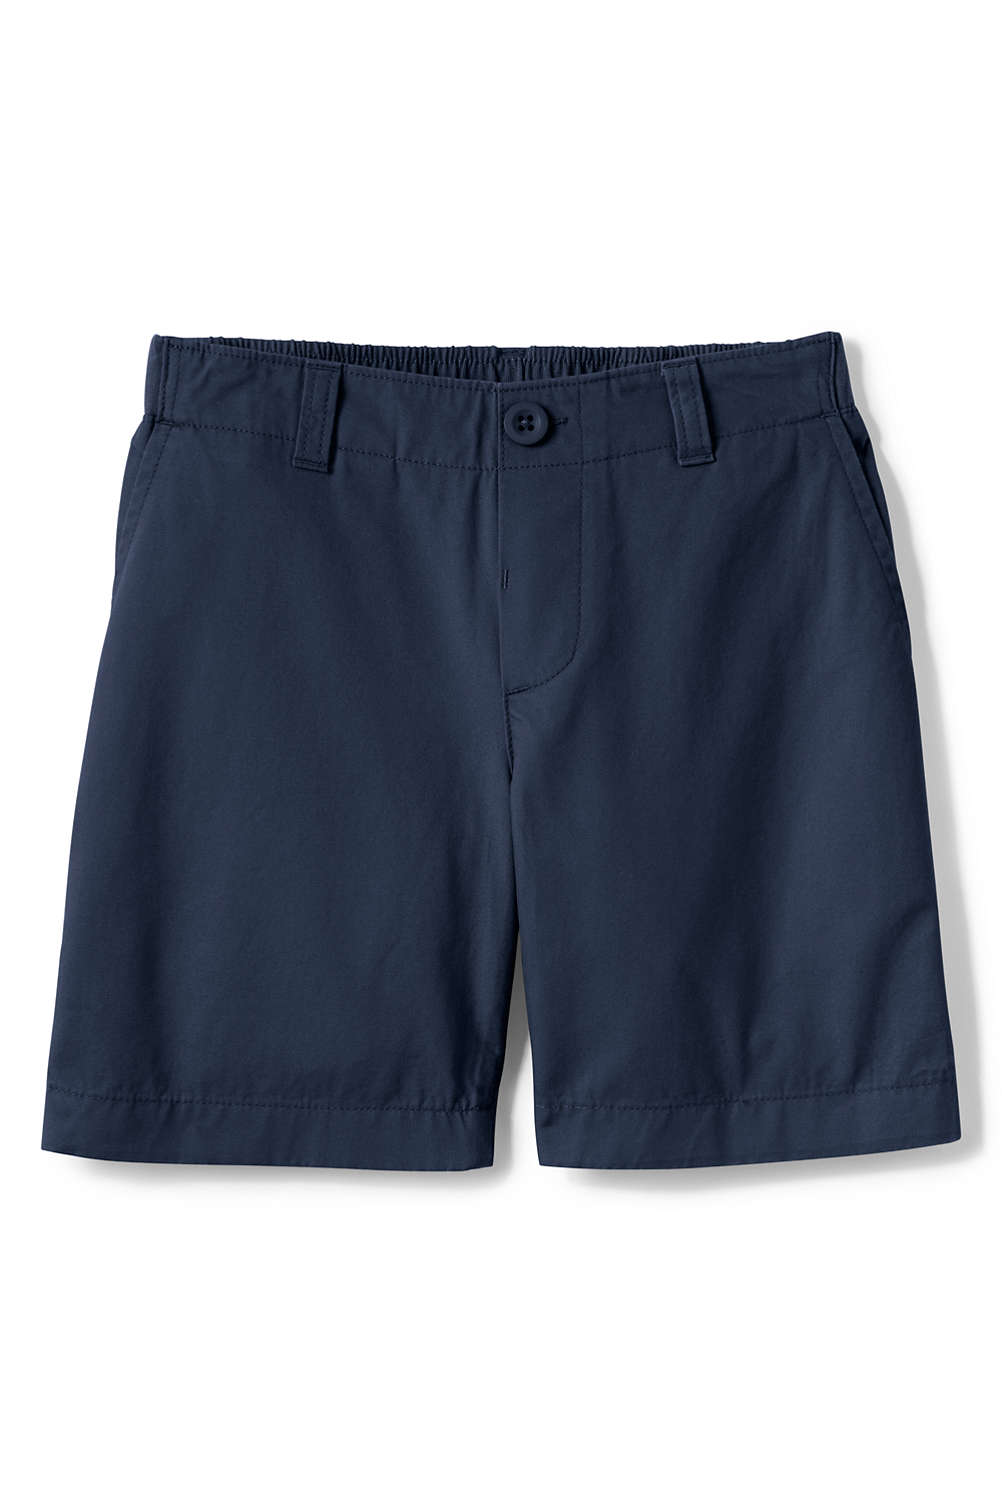 c249735354 School Uniform Girls Elastic Waist Shorts from Lands' End